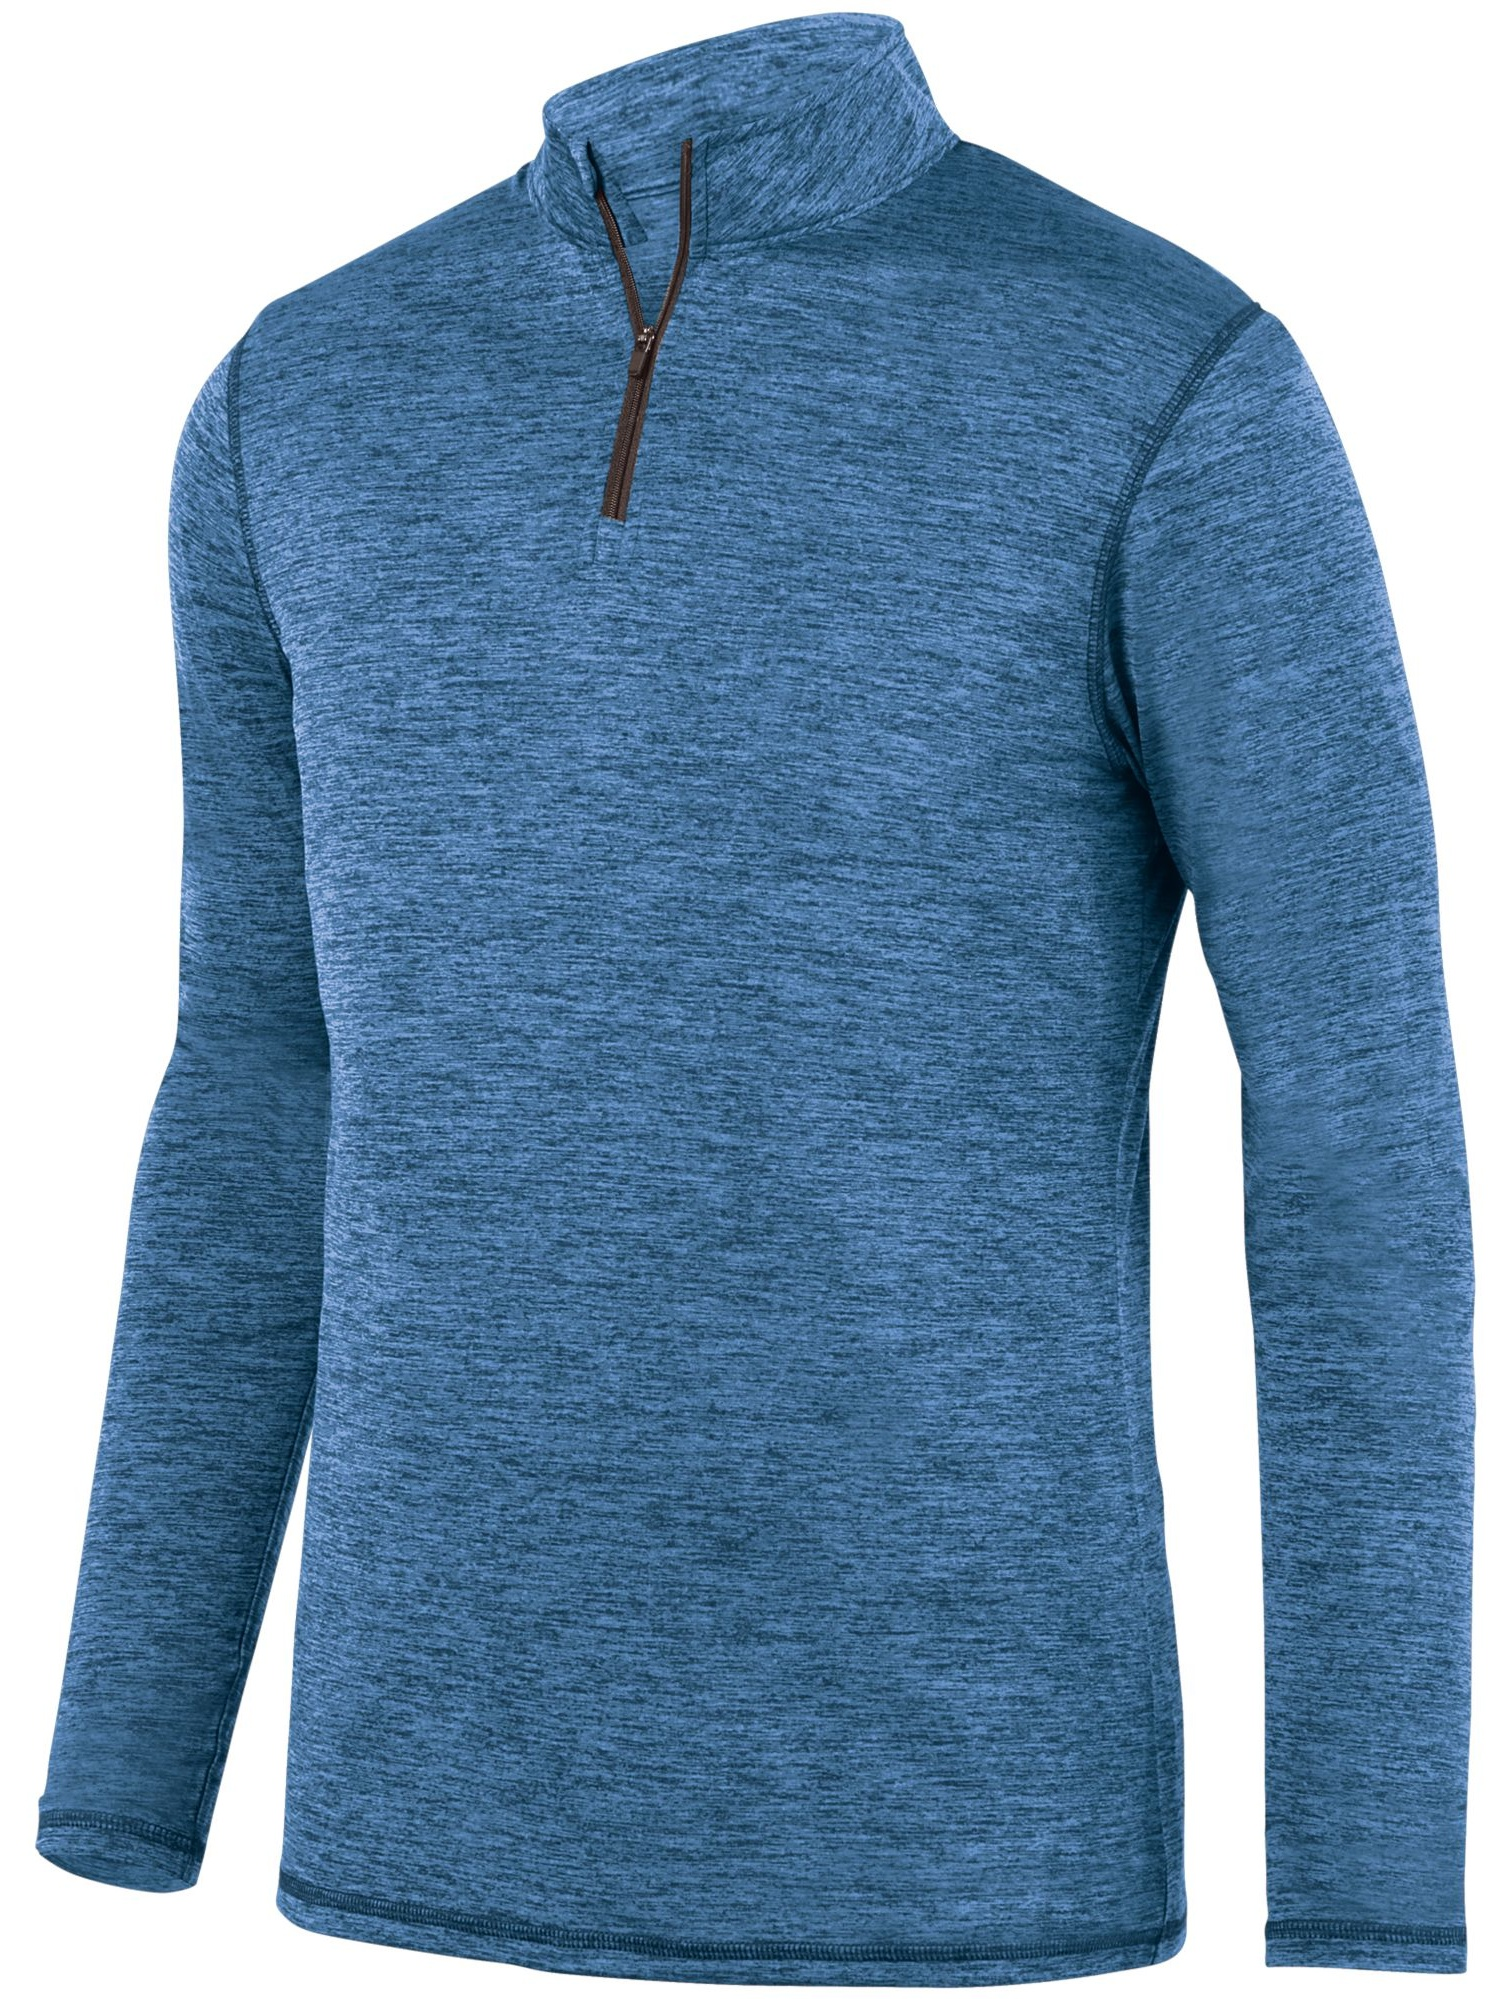 Augusta Sportswear Men's Intensify Black Heather 1/4 Zip Pullover 2955